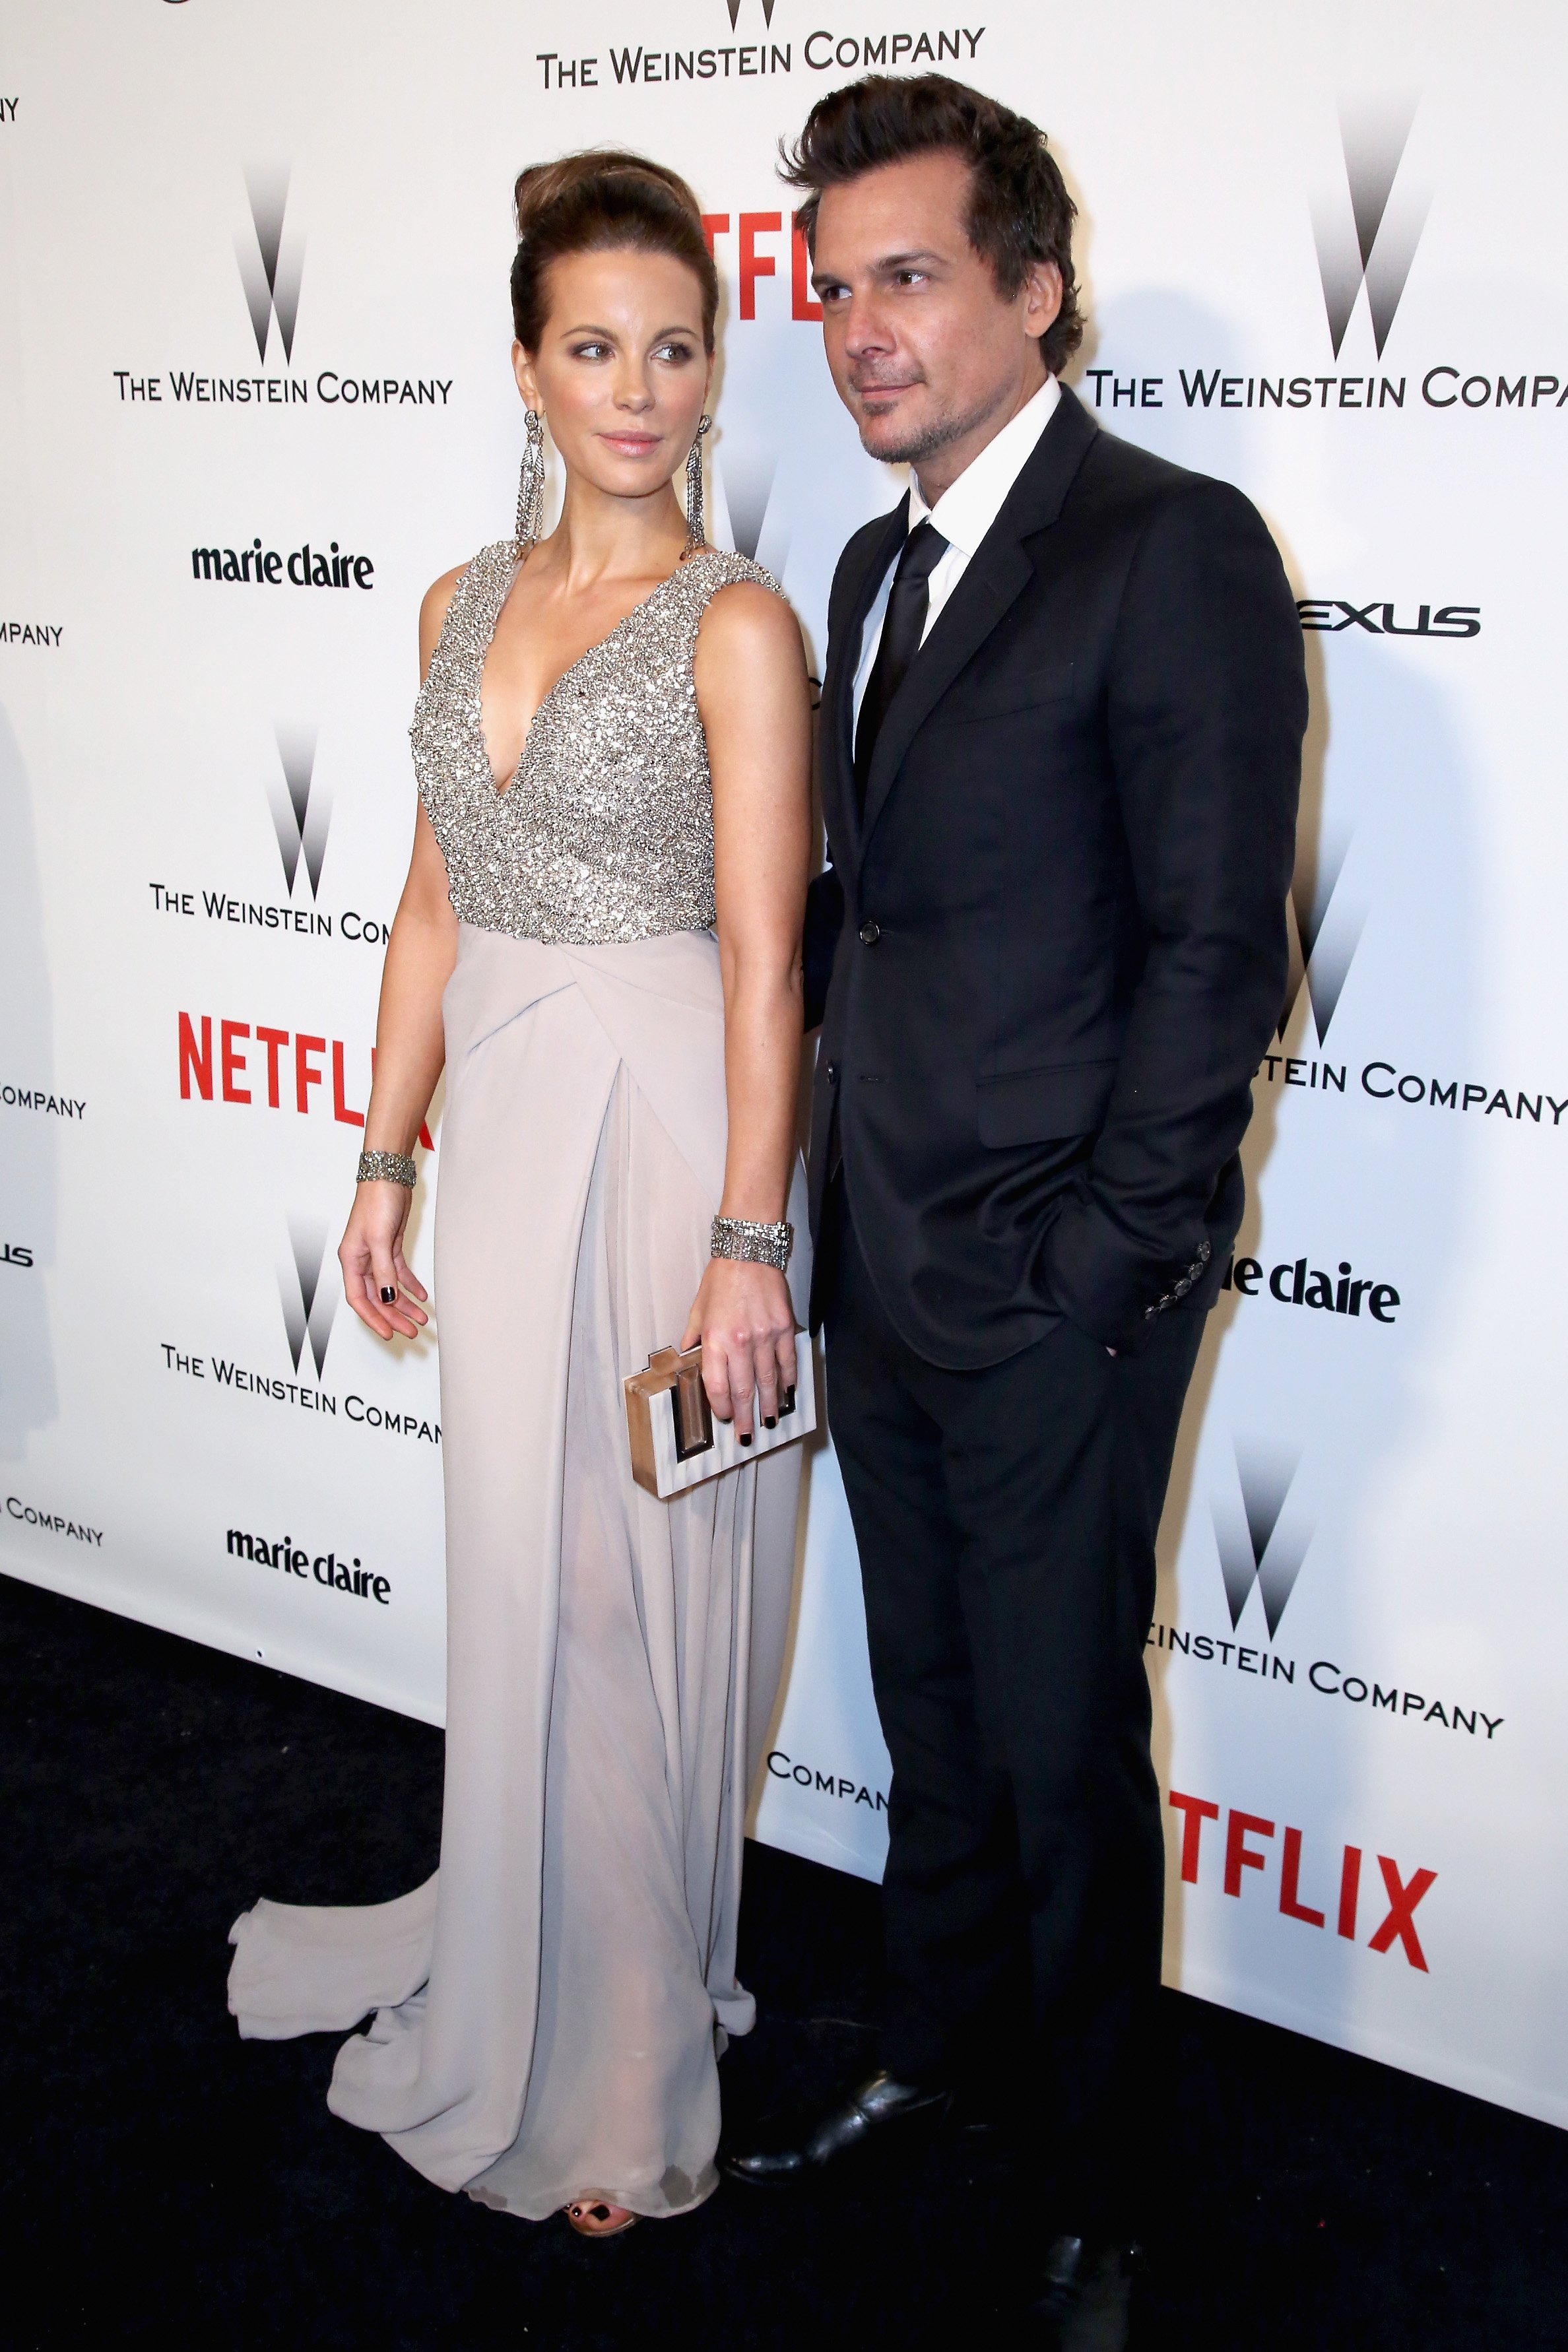 Actress Kate Beckinsale and director Len Wiseman attend The Weinstein Company & Netflix's 2015 Golden Globes After Party presented by FIJI Water, Lexus, Laura Mercier and Marie Claire at The Beverly Hilton Hotel on January 11, 2015 in Beverly Hills, California. (Photo by Ari Perilstein/Getty Images for FIJI Water)